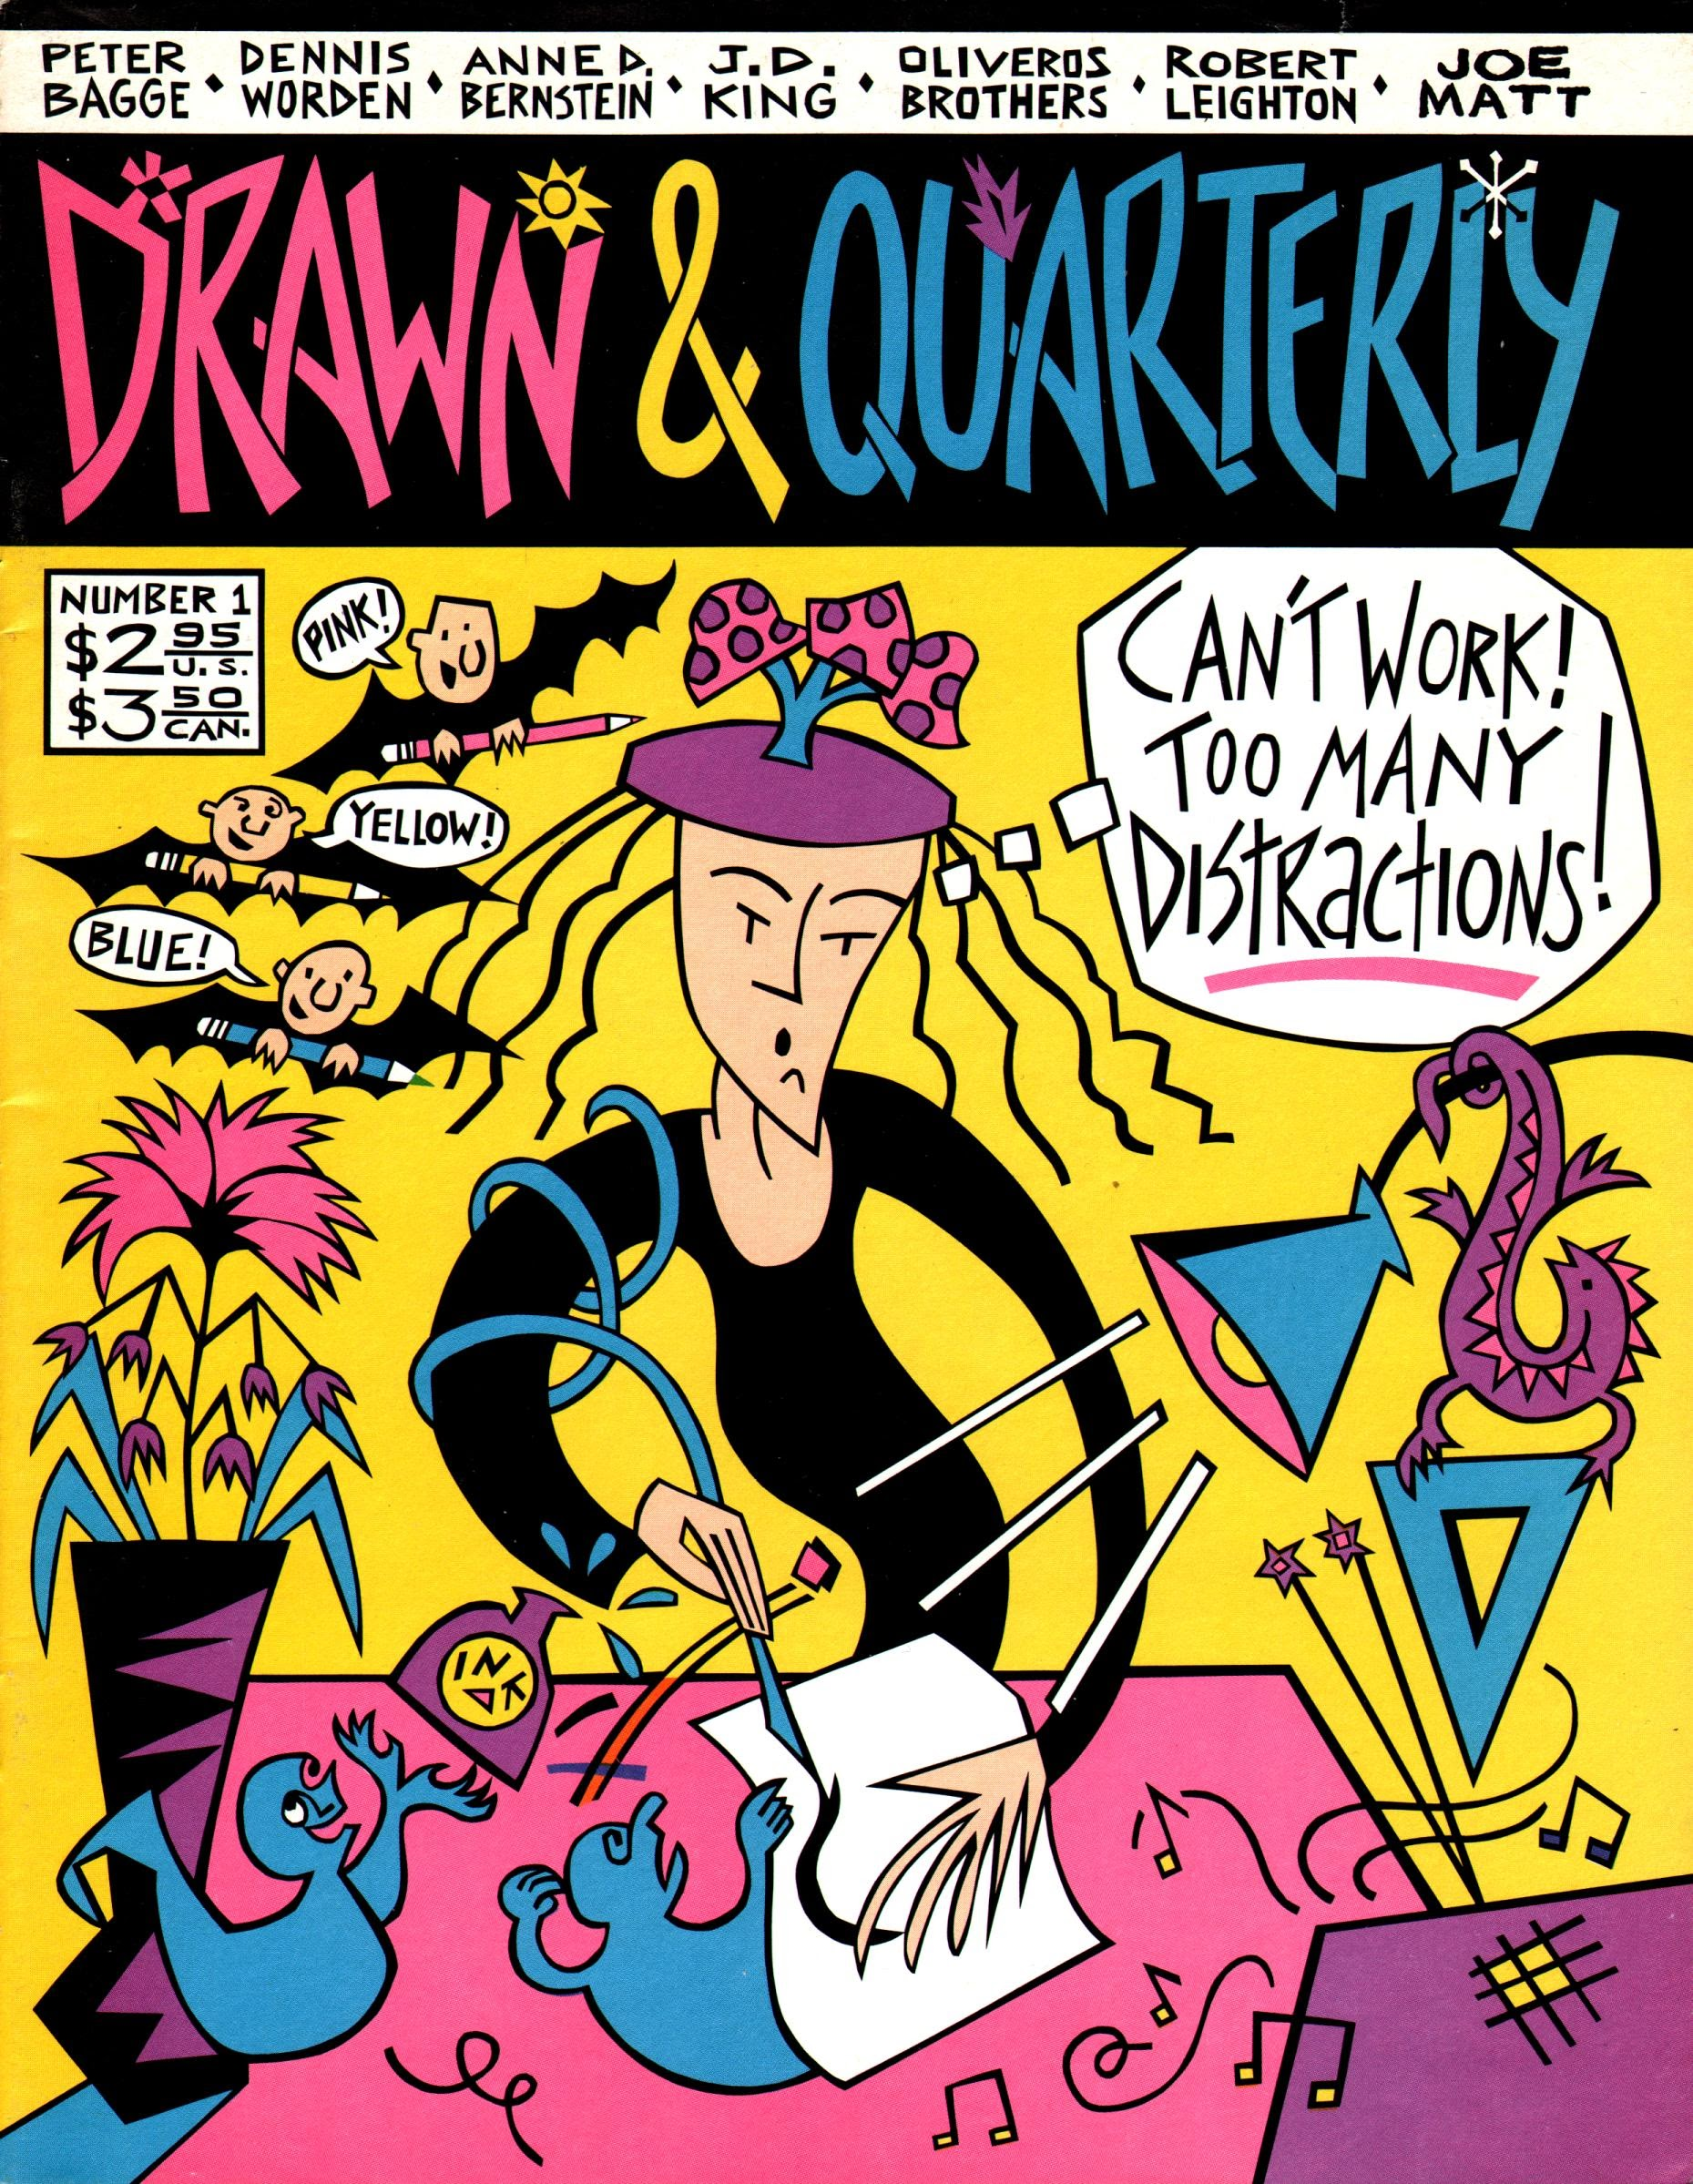 Drawn & Quarterly (1990) issue 1 - Page 1